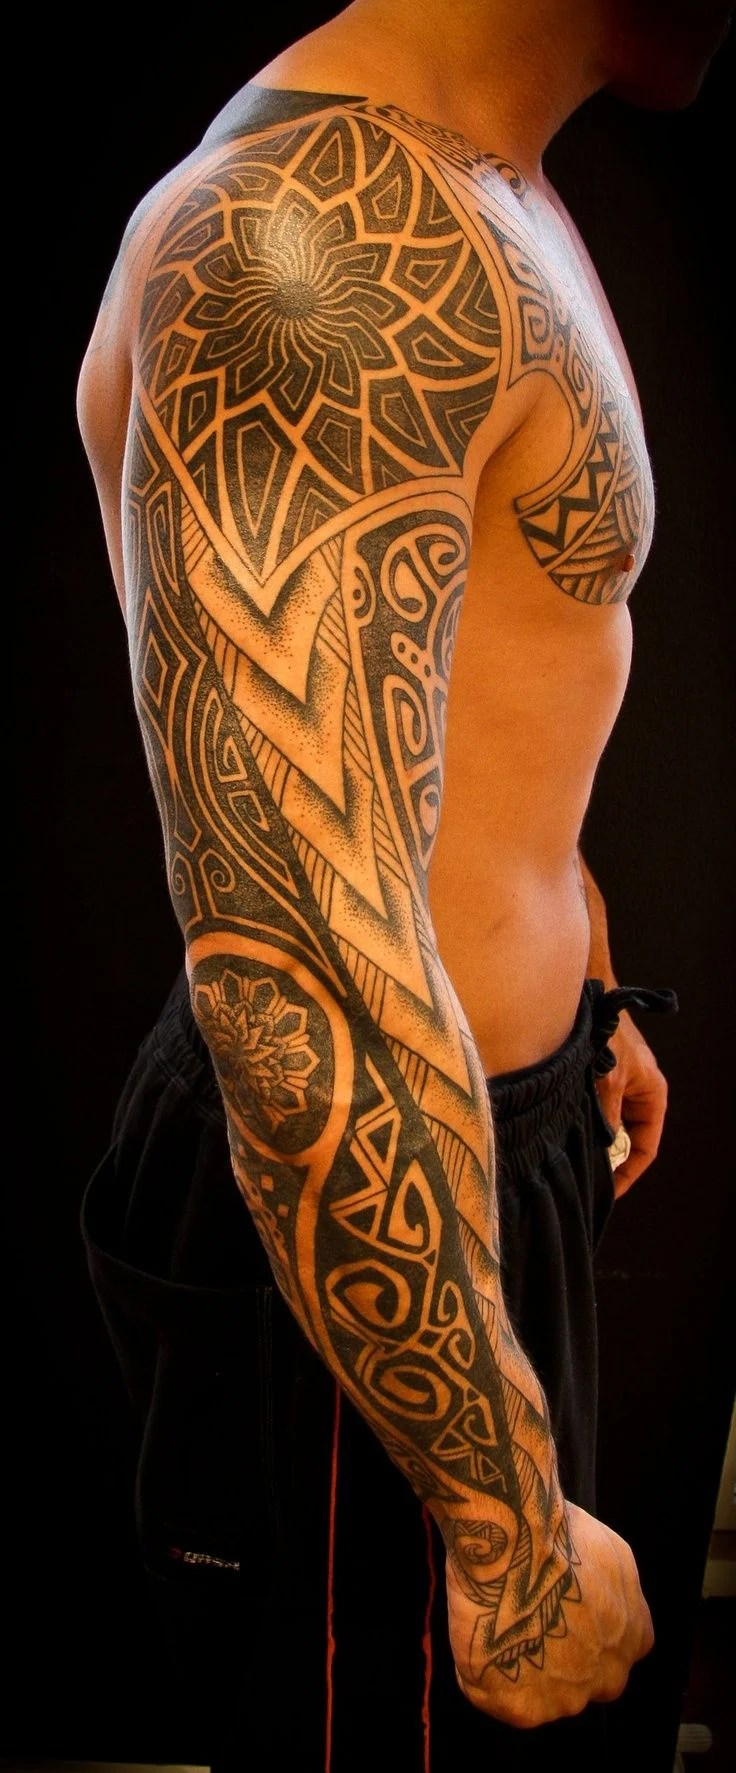 Arm Tattoos For Men Designs And Ideas For Guys Ideas And Designs